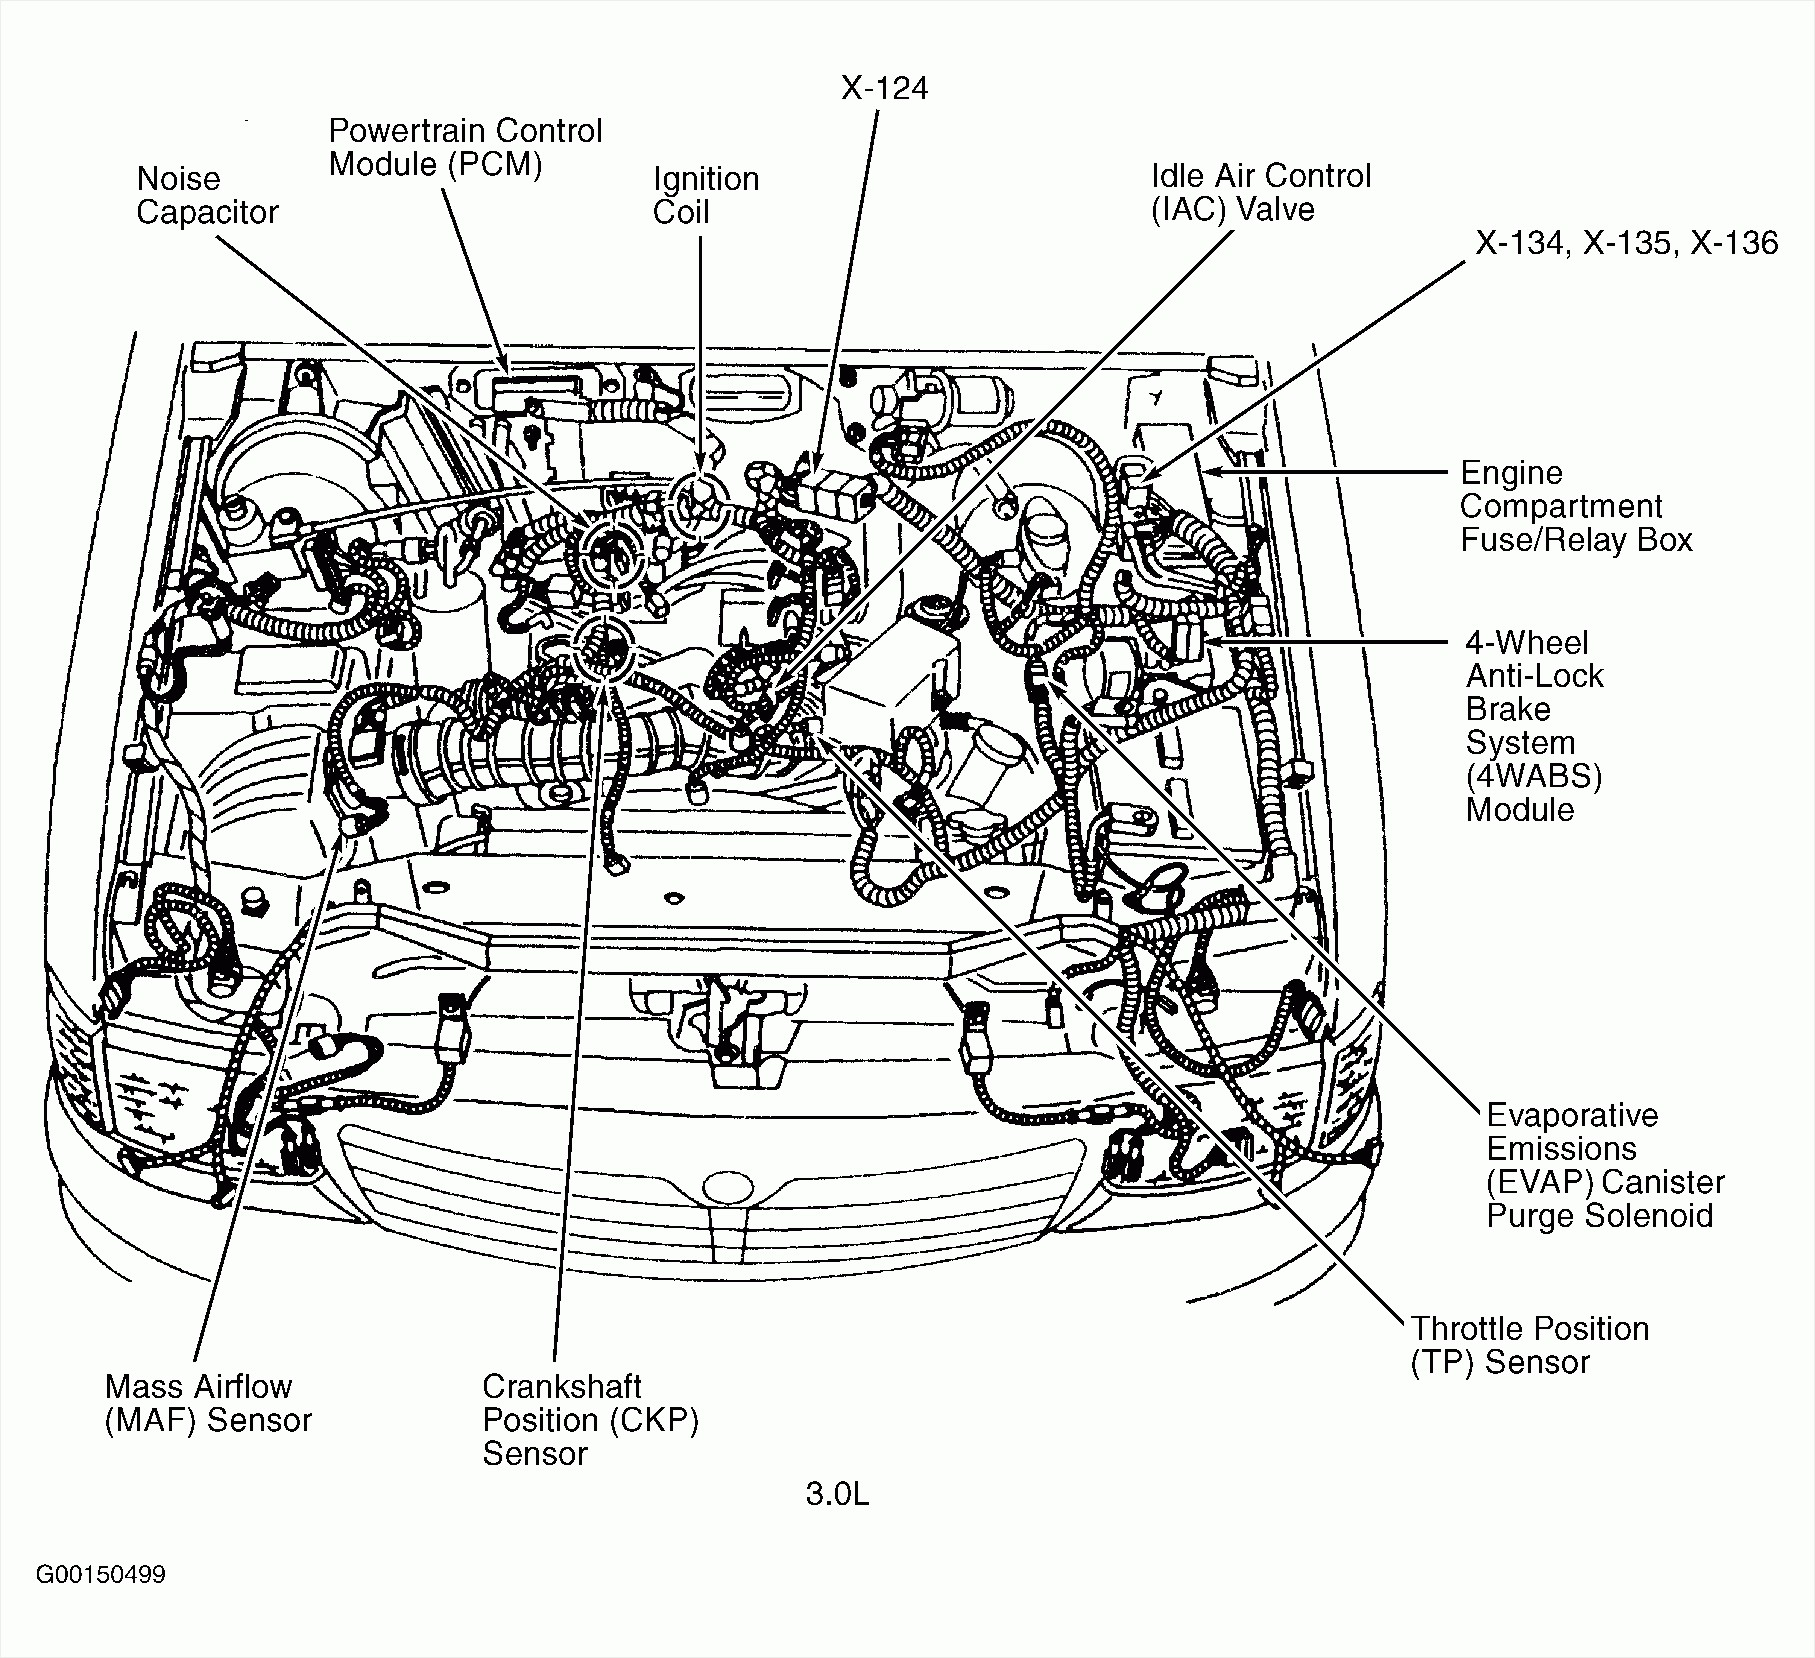 [DIAGRAM_5FD]  2004 Jetta Engine Diagram 2004 vw jetta cooling system diagram 2003 vw jetta  1.8t engine diagram - pool.123vielgeld.de | 2004 Jetta Engine Diagram |  | Wires